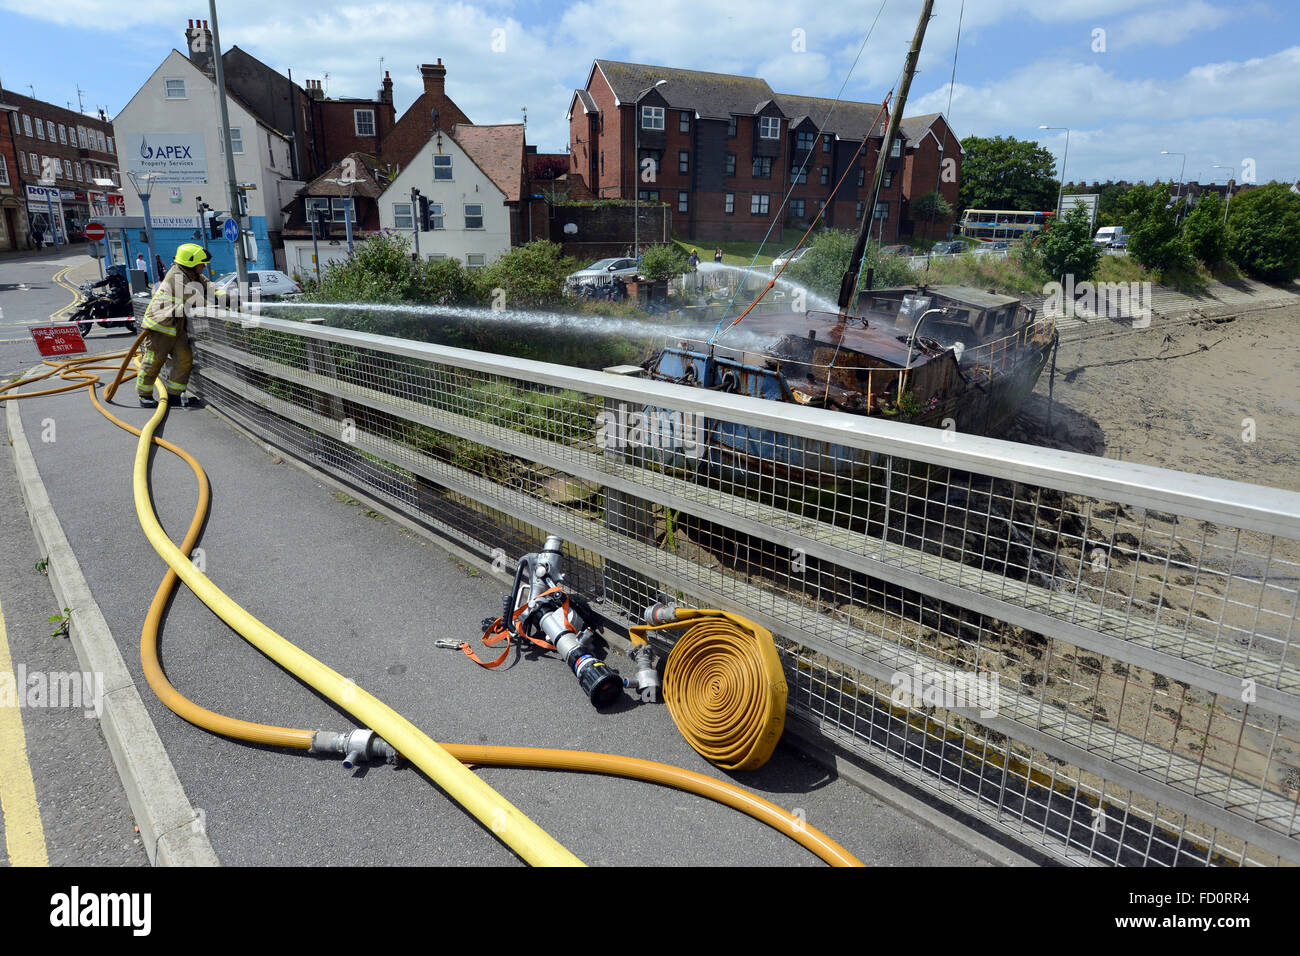 Boat fire dosed by fire service, Newhaven, UK - Stock Image